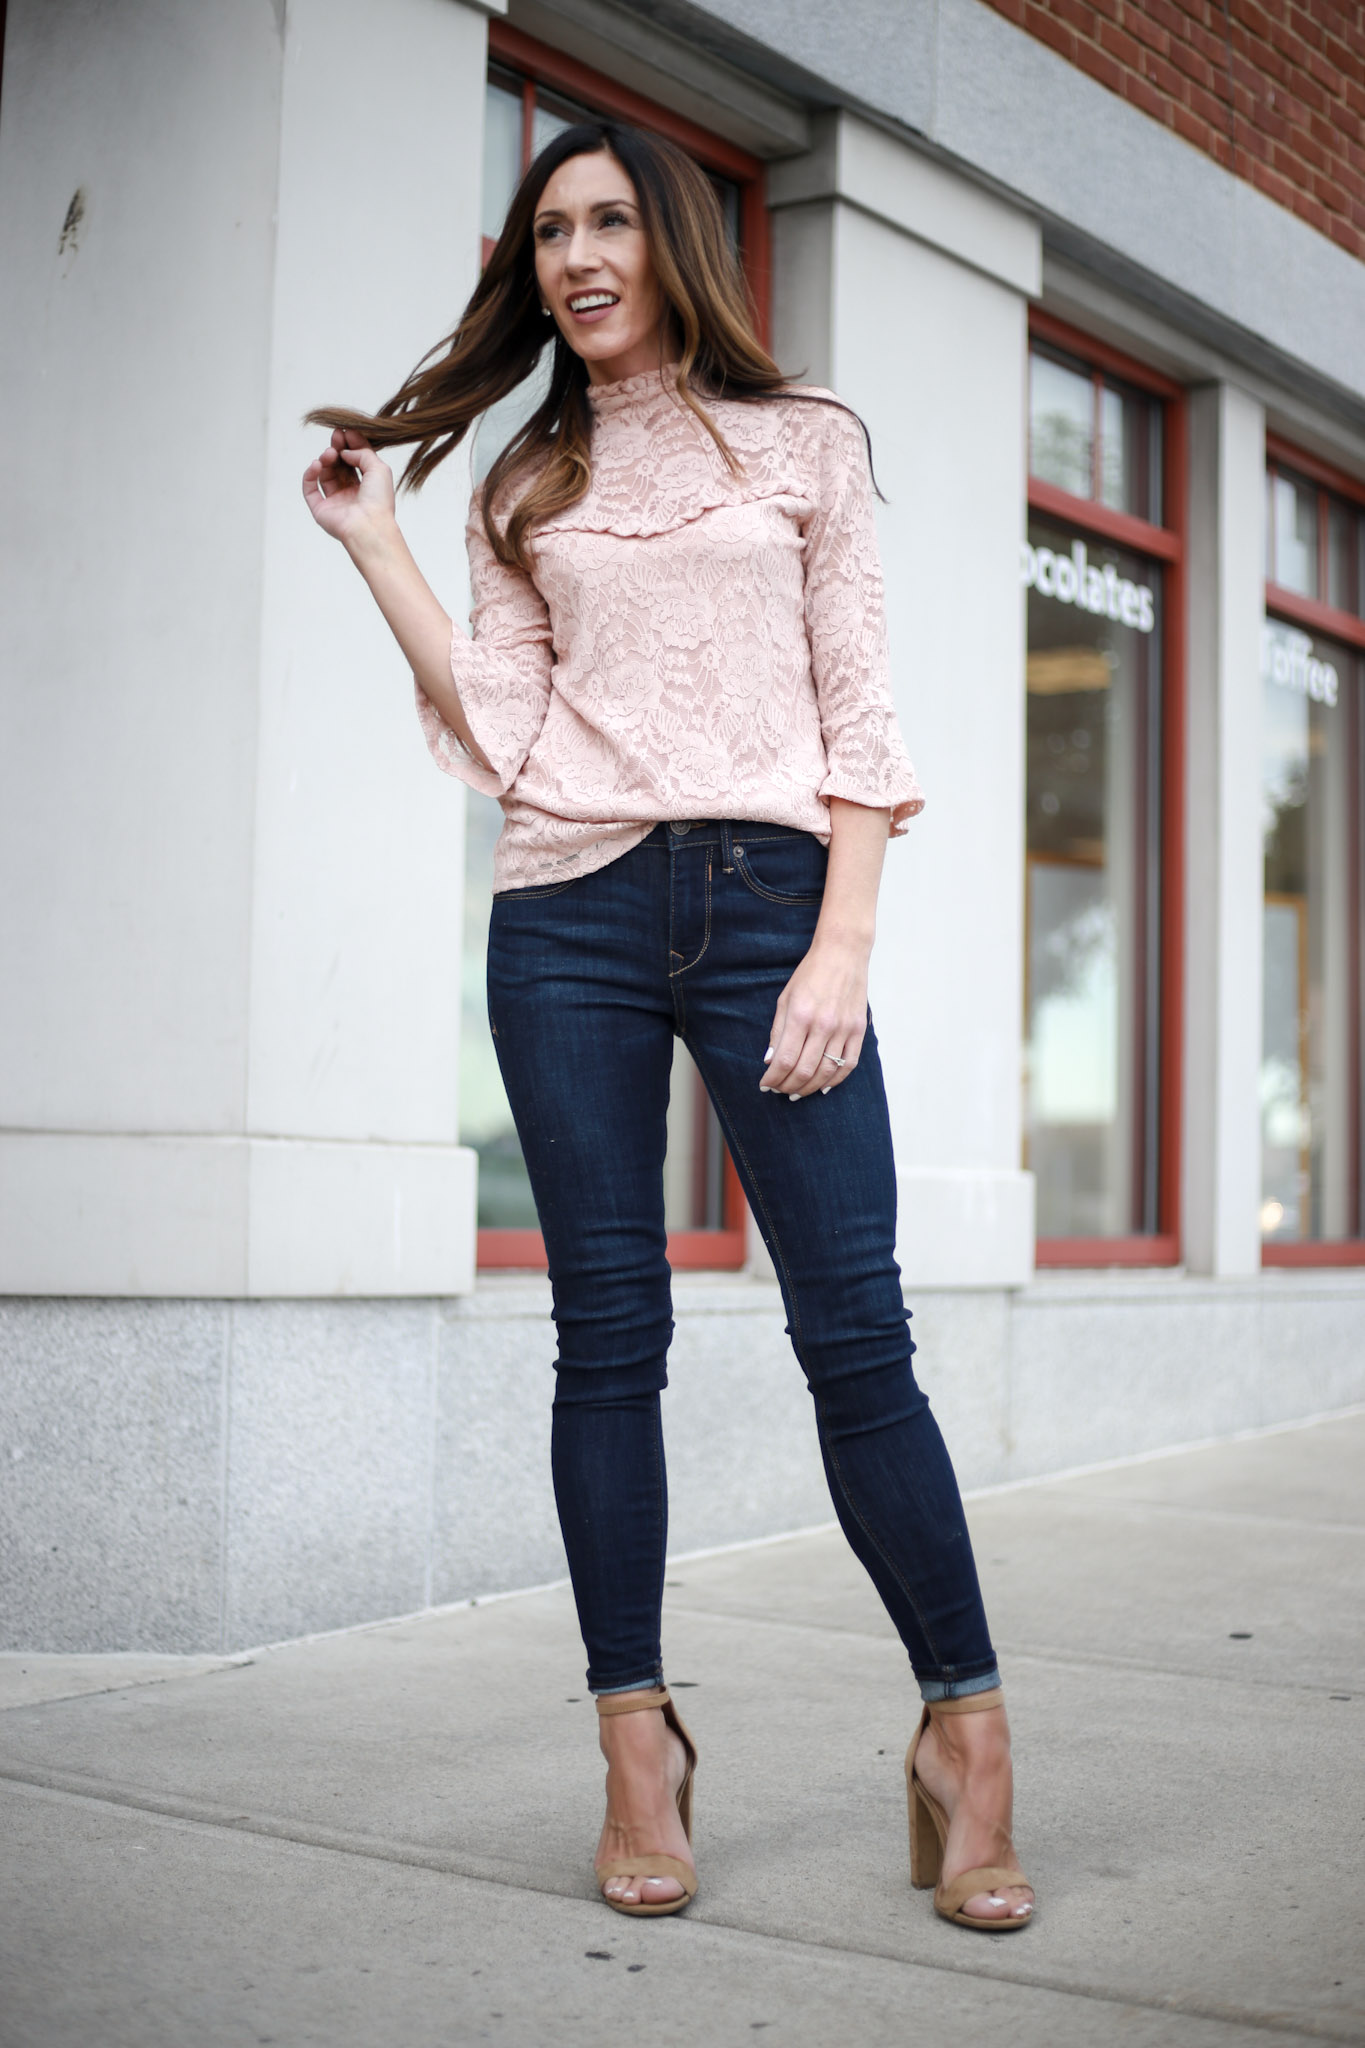 The best dark skinnies for your capsule wardrobe! - Capsule Wardrobe Series - Skinny Jeans by Boston fashion blogger Living Life Pretty